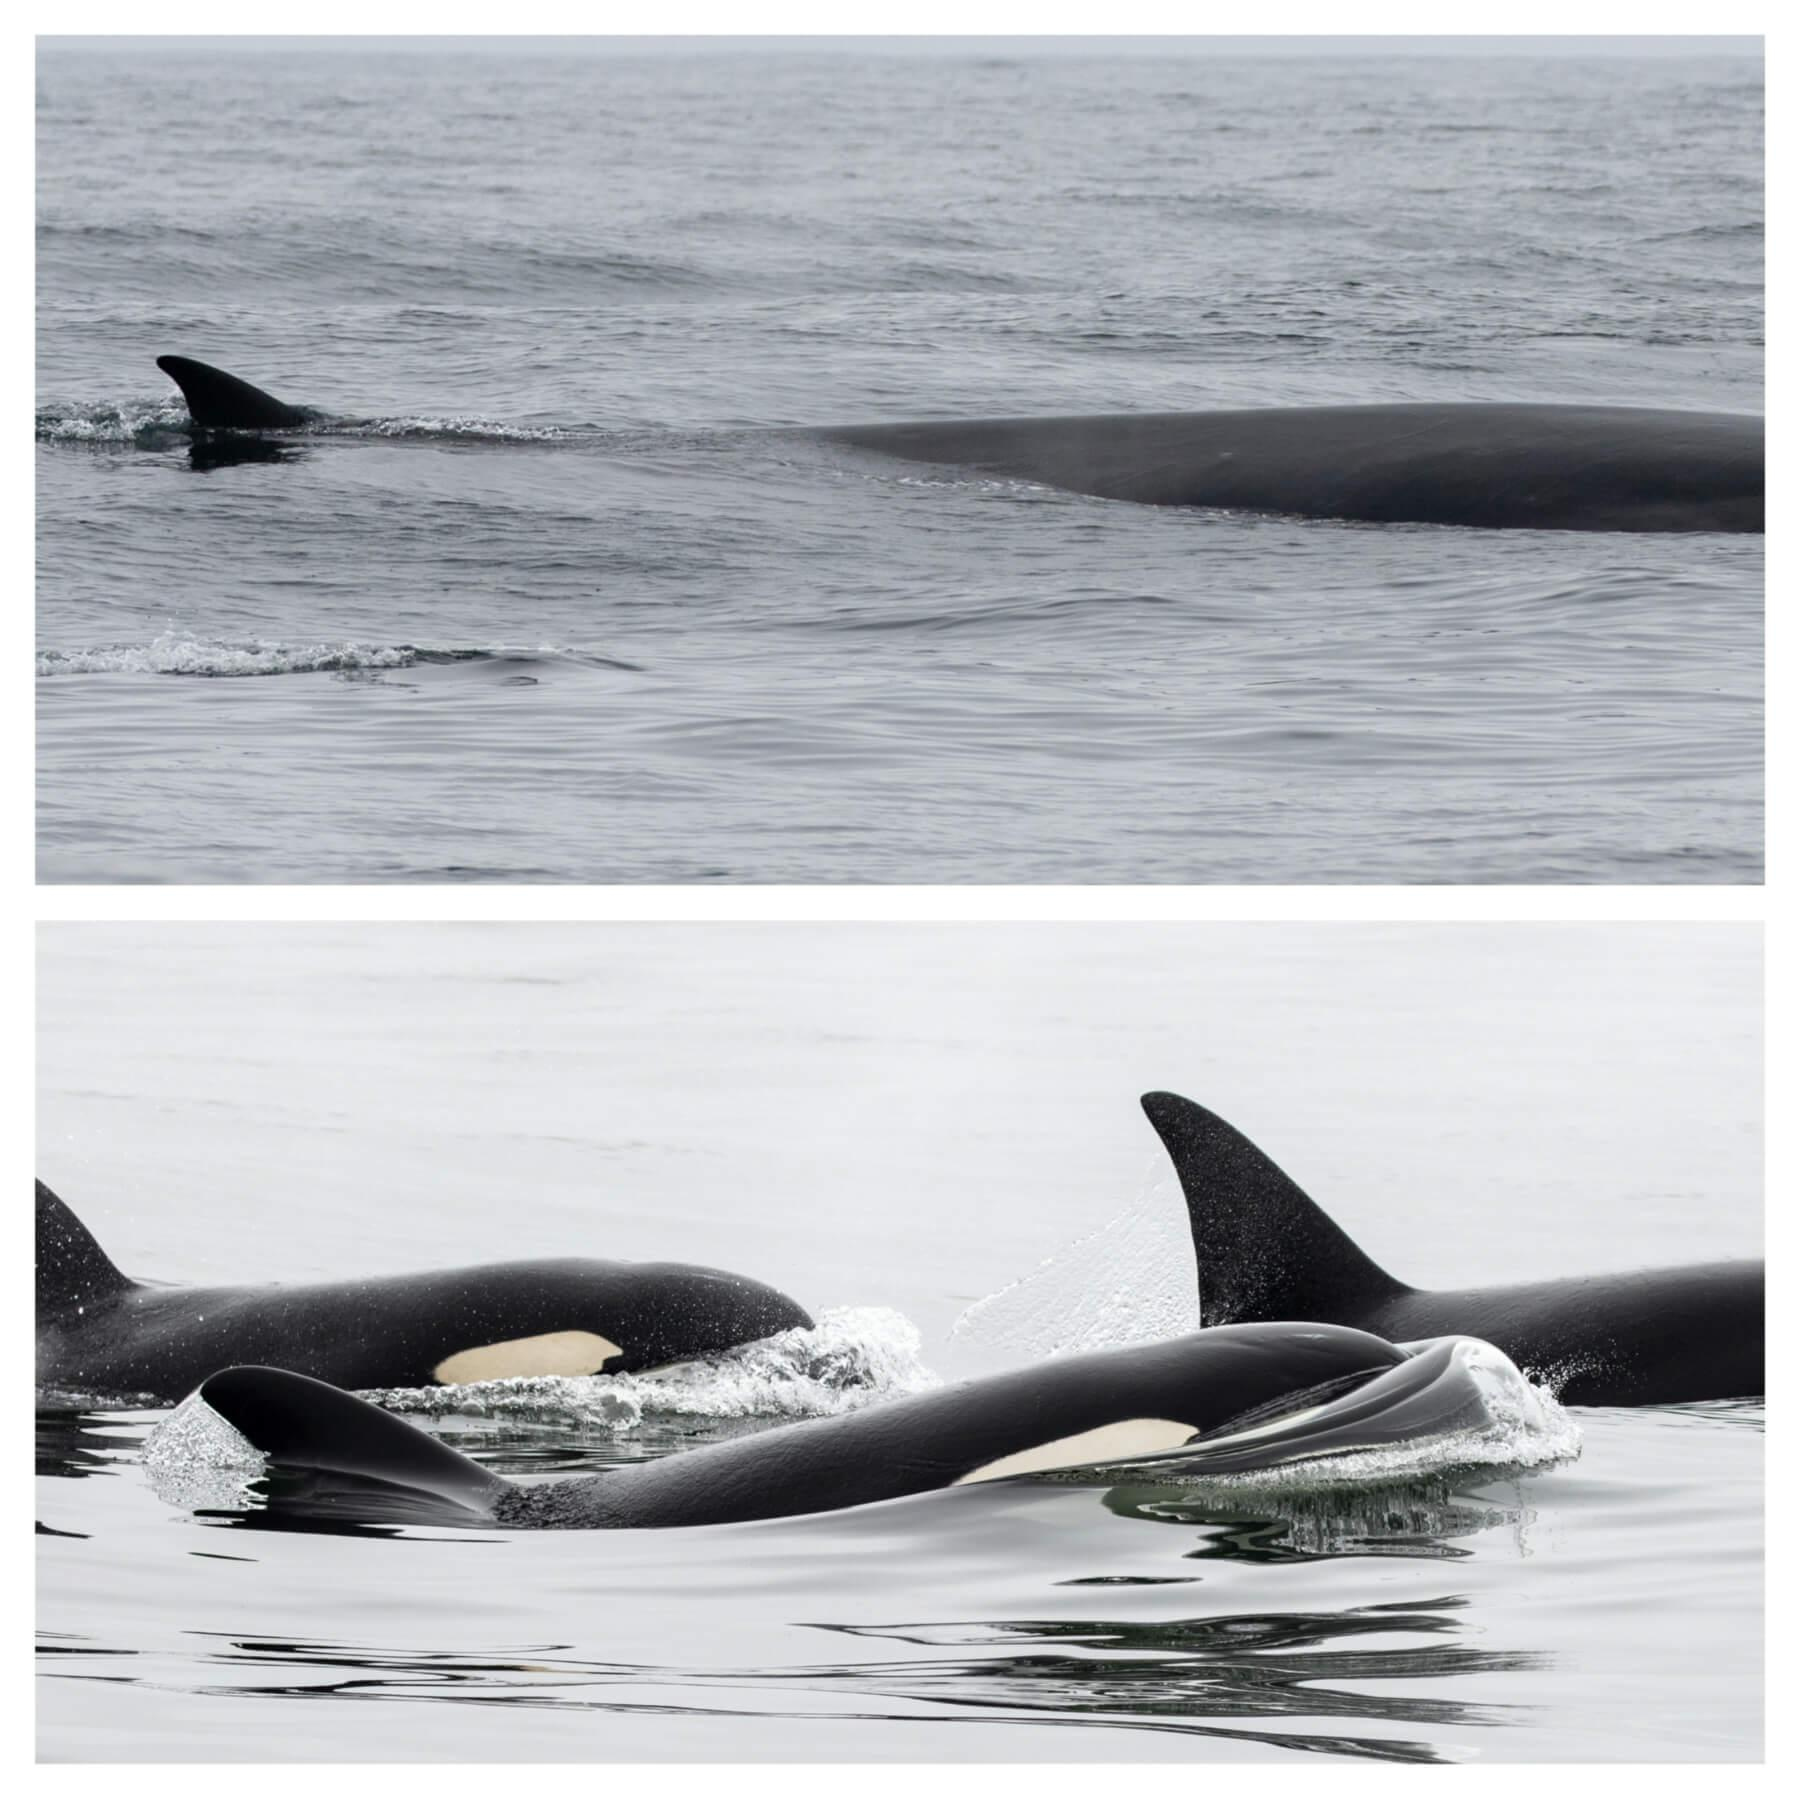 Fin whale (top), killer whales (bottom). © Chris Biertuempfel